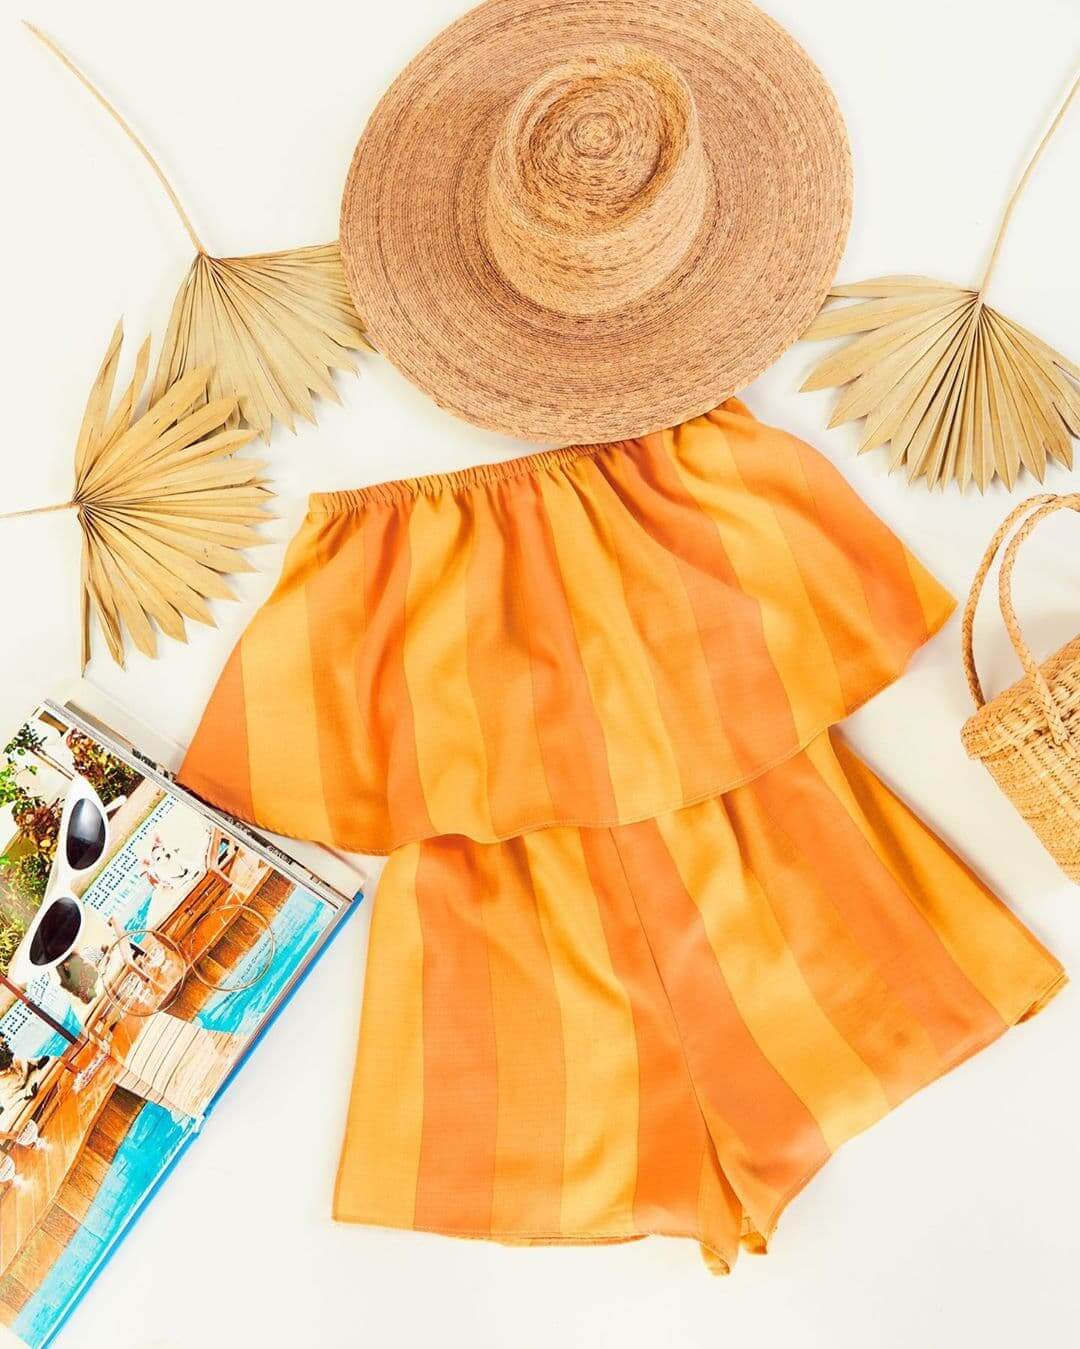 Summer Outfits Sundresses Beach Casual Sunkissed Stripe Orange Romper Playsuit Show Me Your Mumu (1)